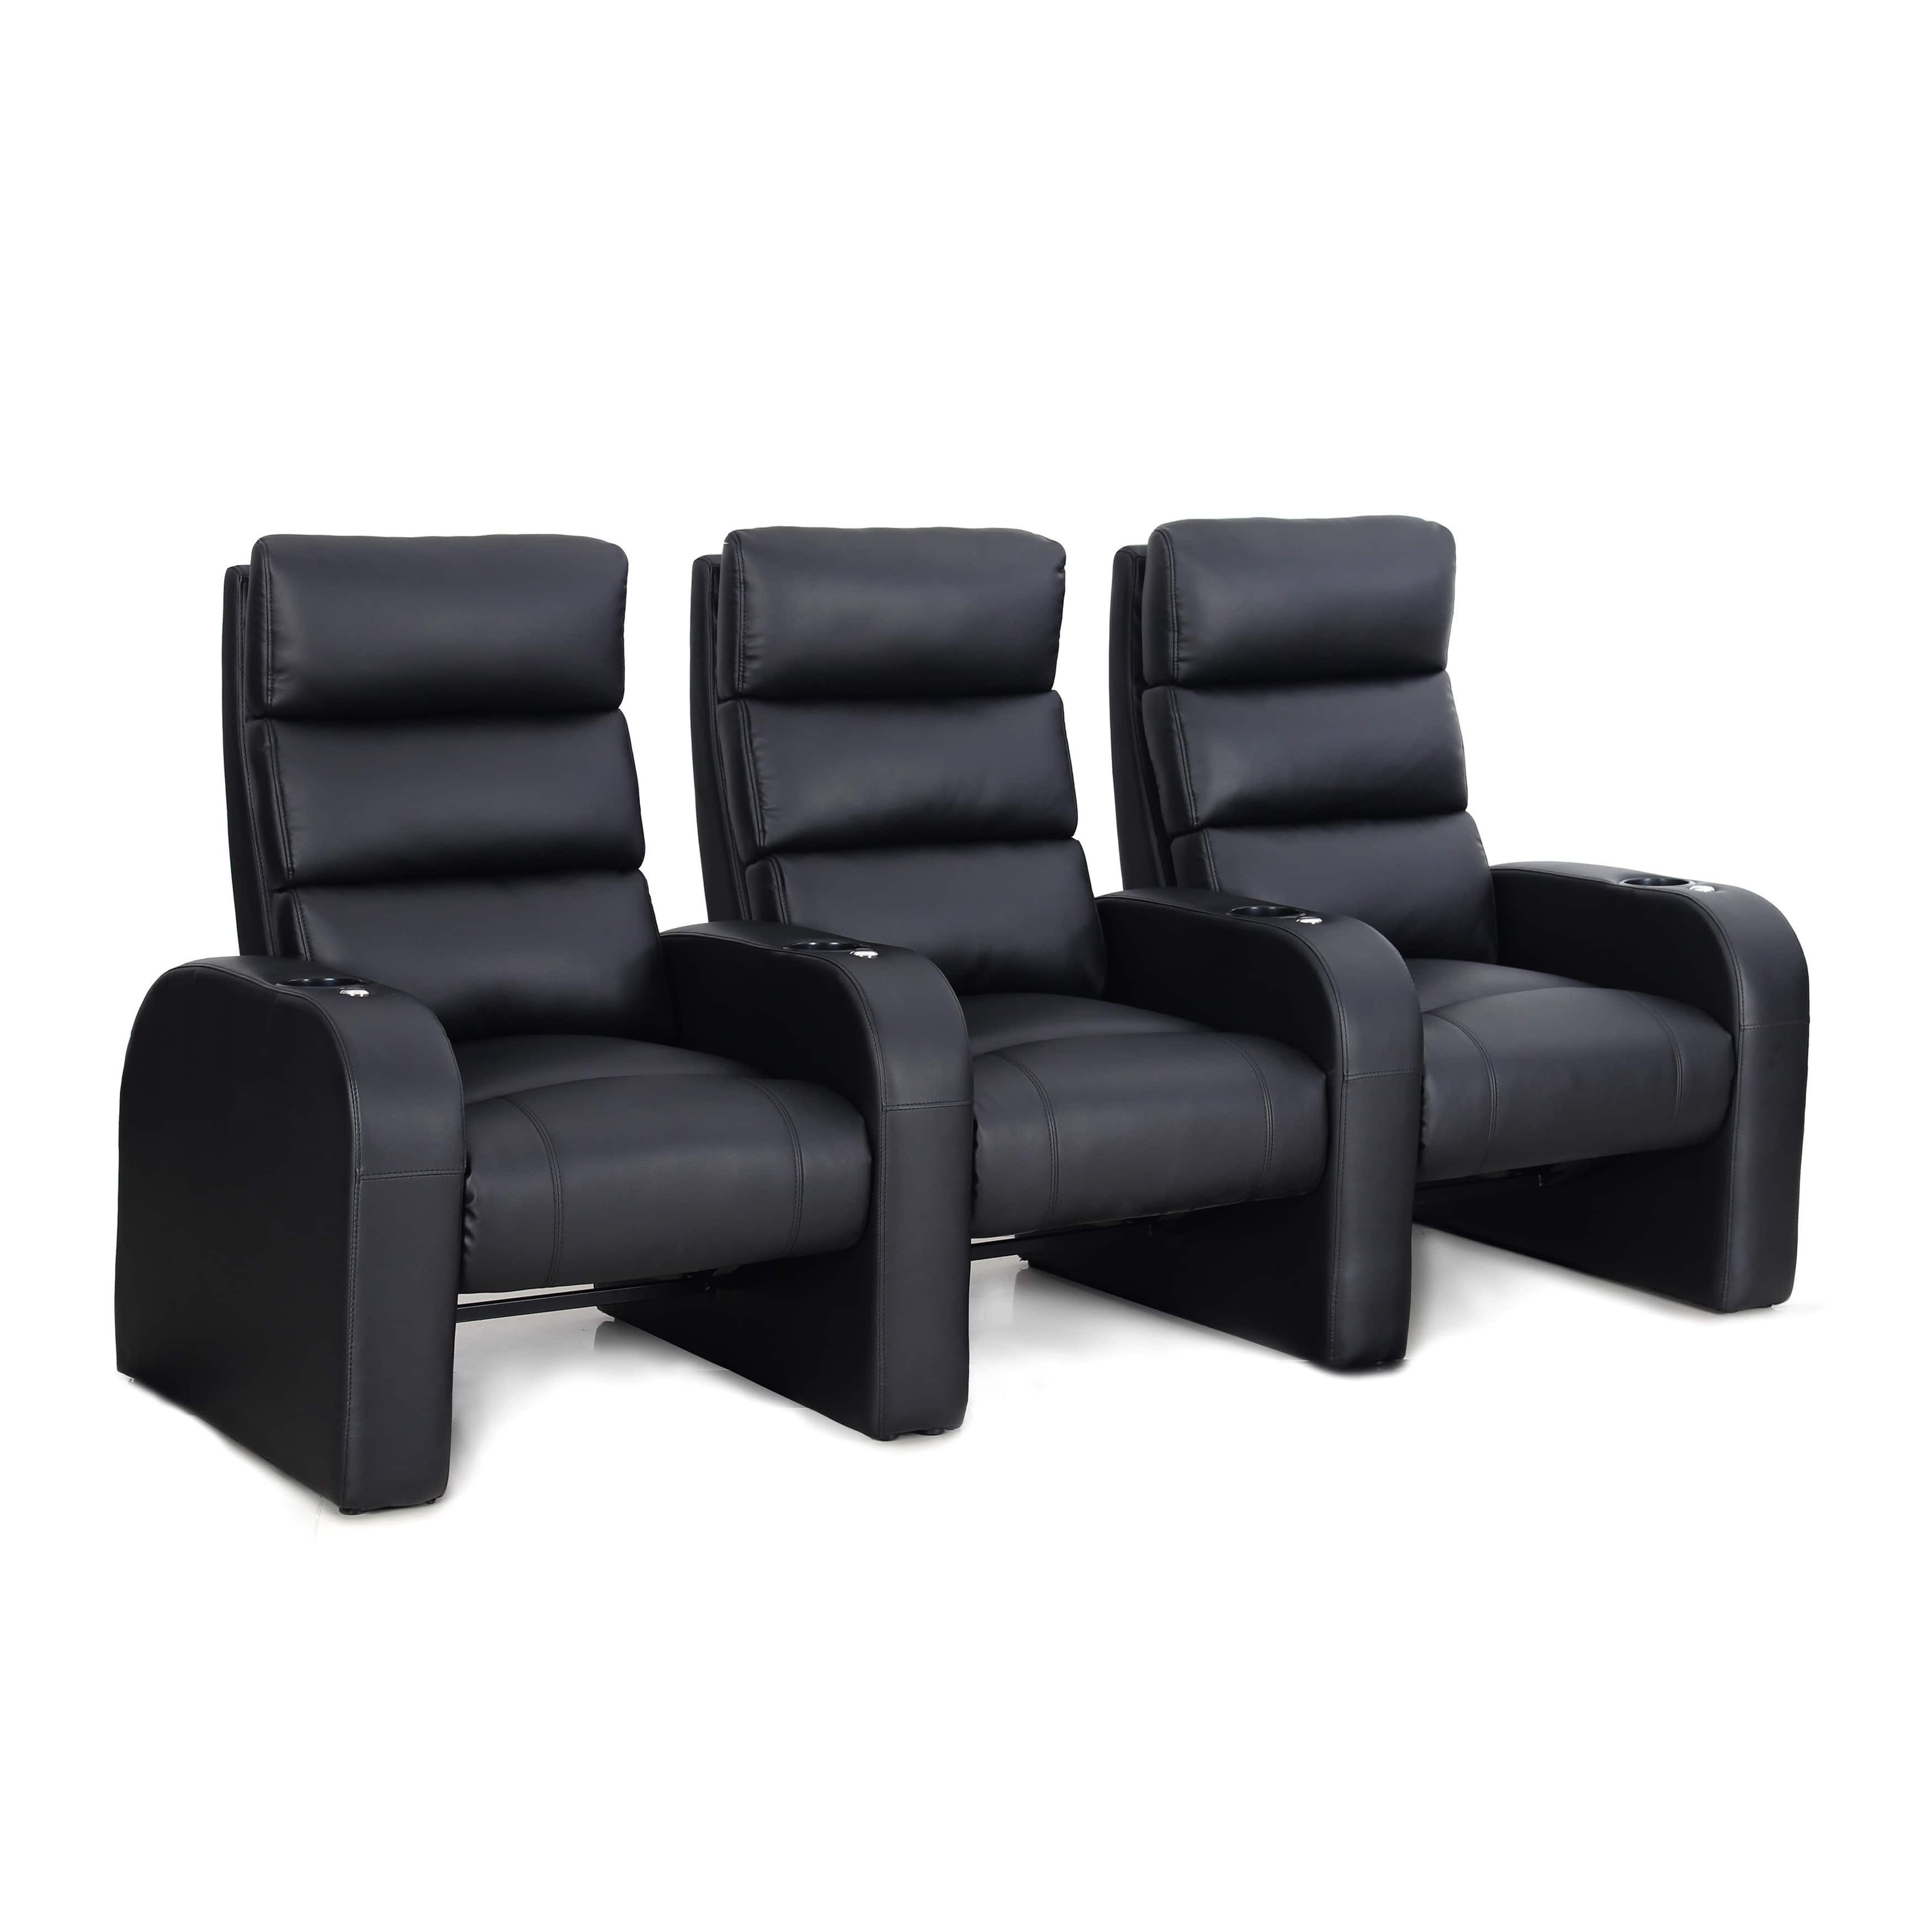 Octane Cruise ZR500 Black Bonded Leather Recliner Home Theater